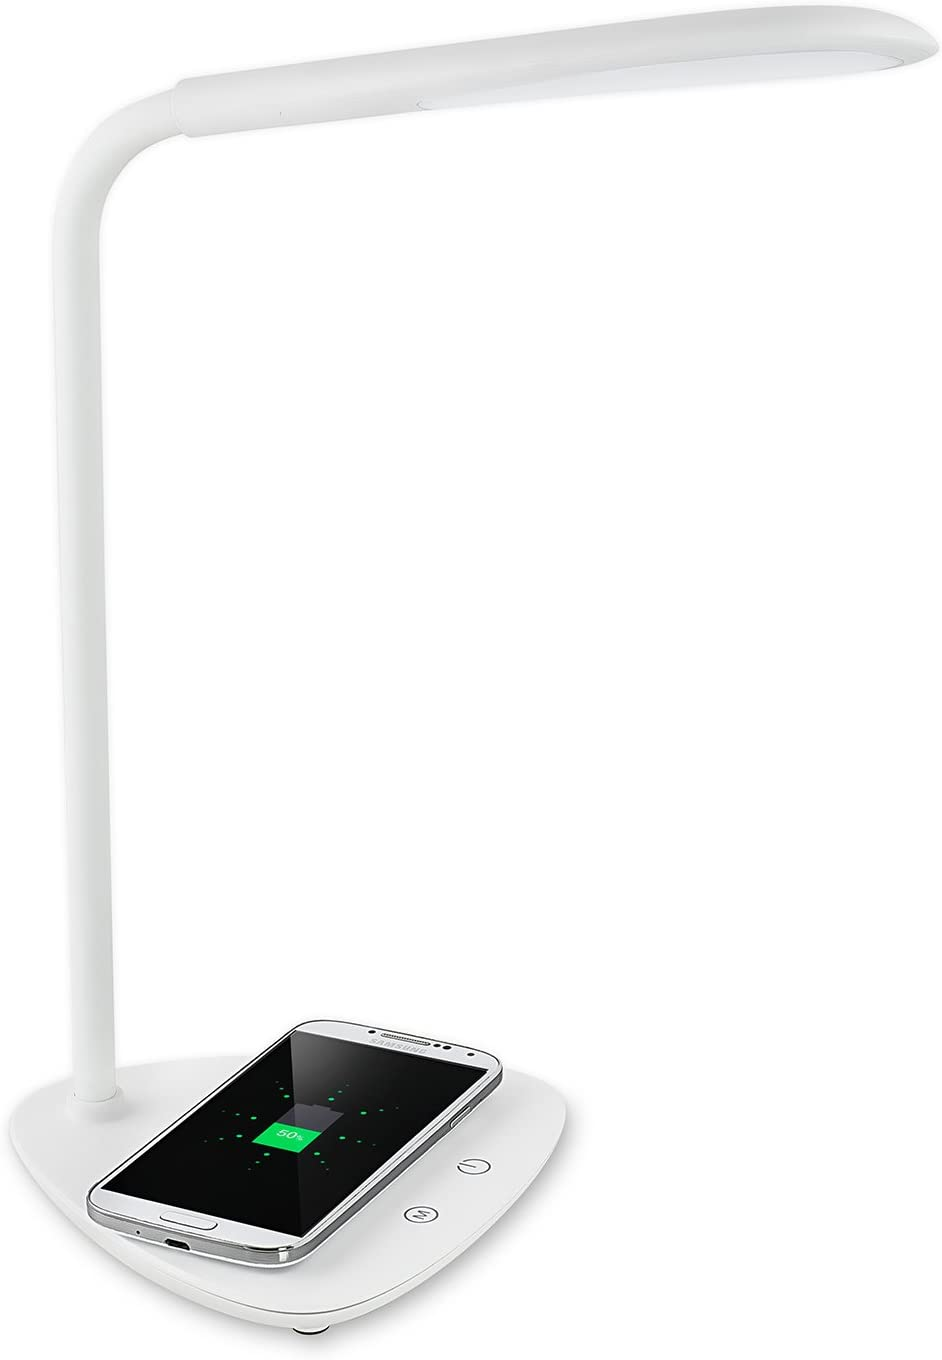 Turcom LED Desk Lamp With Wireless Charger, Adjustable Light Temperature and Intensity